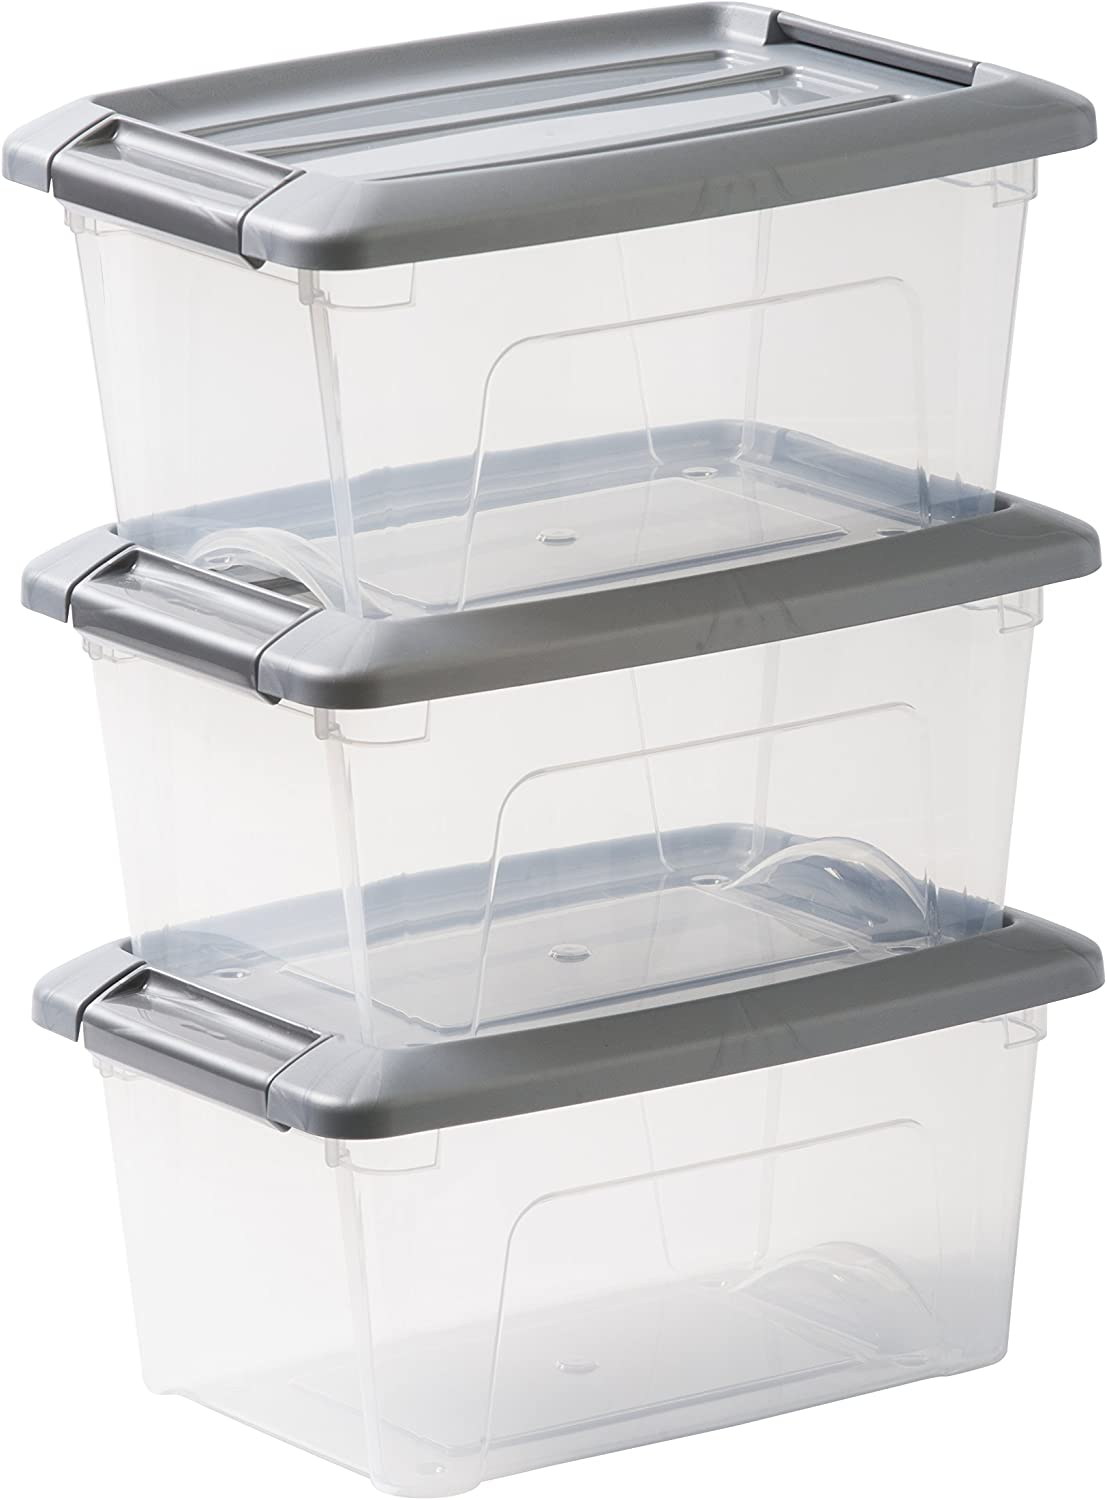 IRIS OHYAMA,3er-Set stackable storage boxes / boxes / stacking boxes, with snap closure, plastic, transparent lid, 5 L,